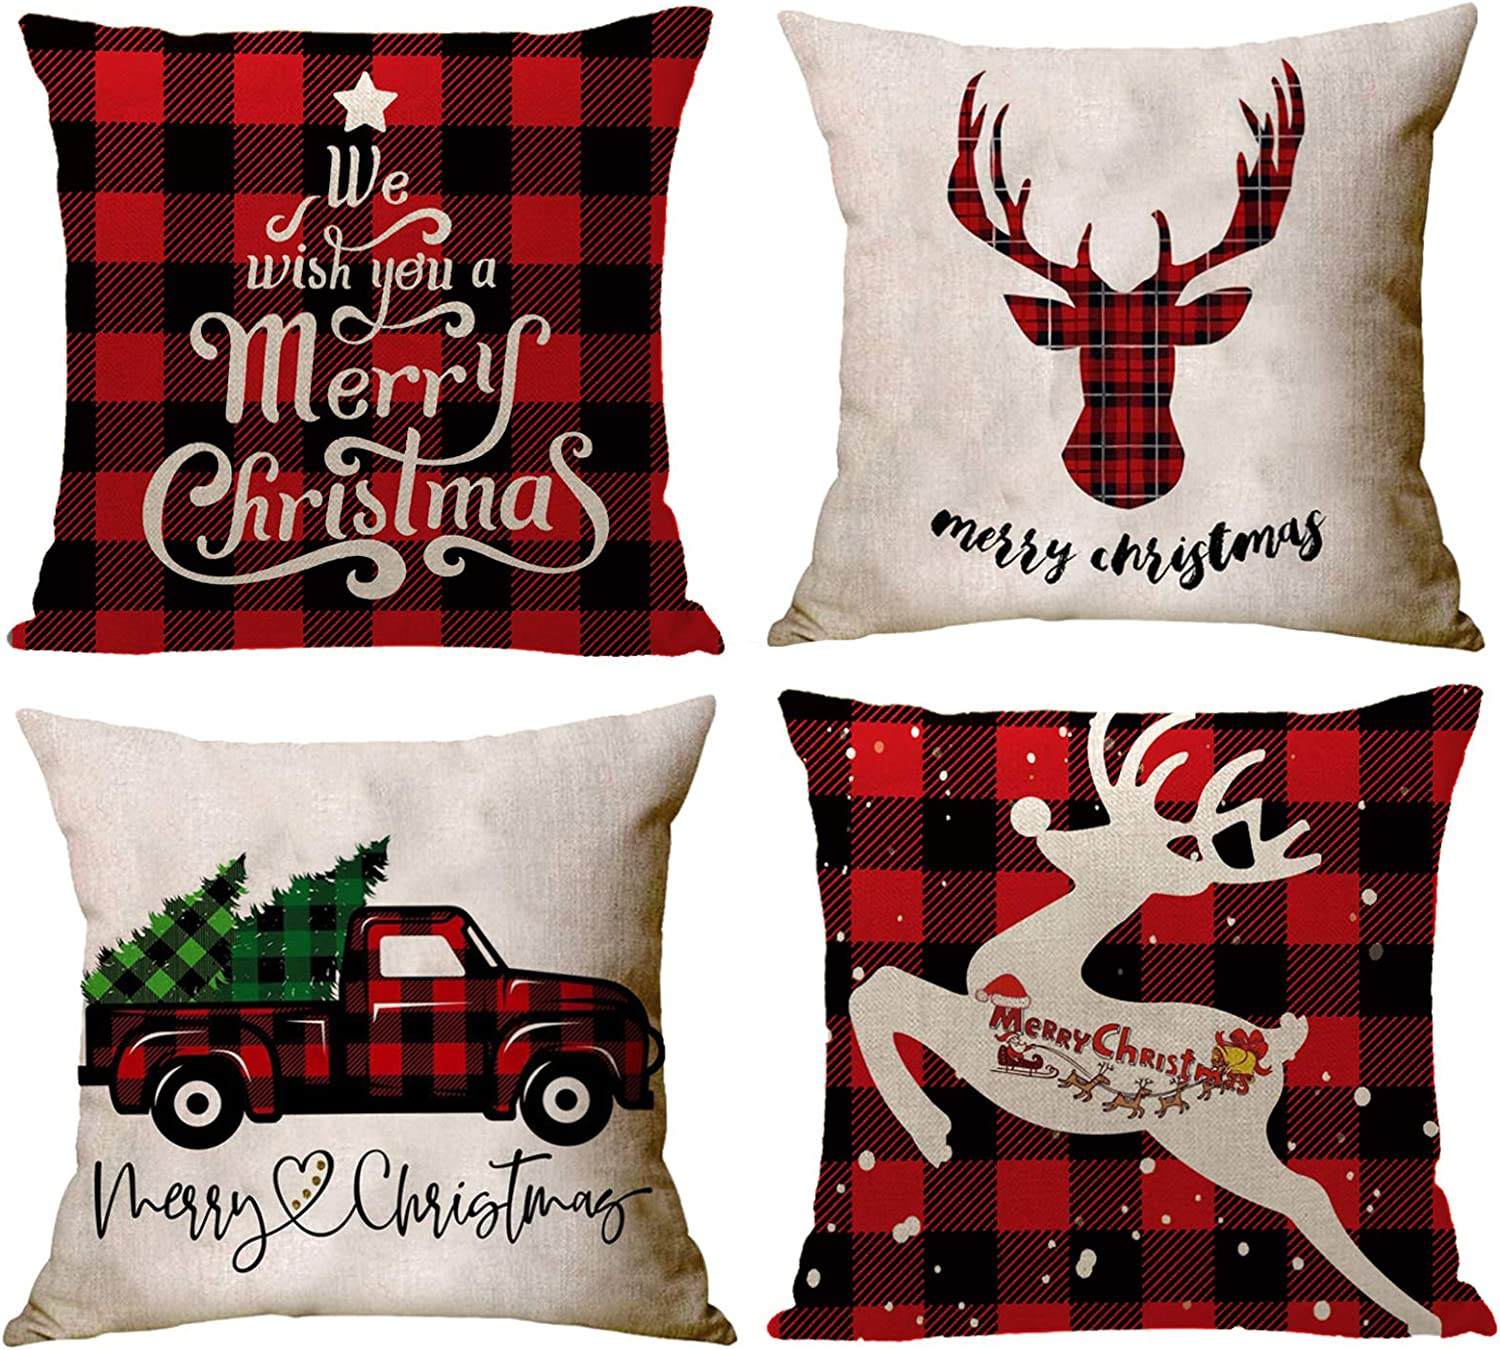 """YZEECOL Christmas Pillow Covers Merry Christmas and Reindeer Santa Clause Design Xmas Tree Decorations for Home Decor Farmhouse Buffalo Plaid Cushion Cover Throw Pillow Covers 18""""x18"""" Set of 4 Red"""